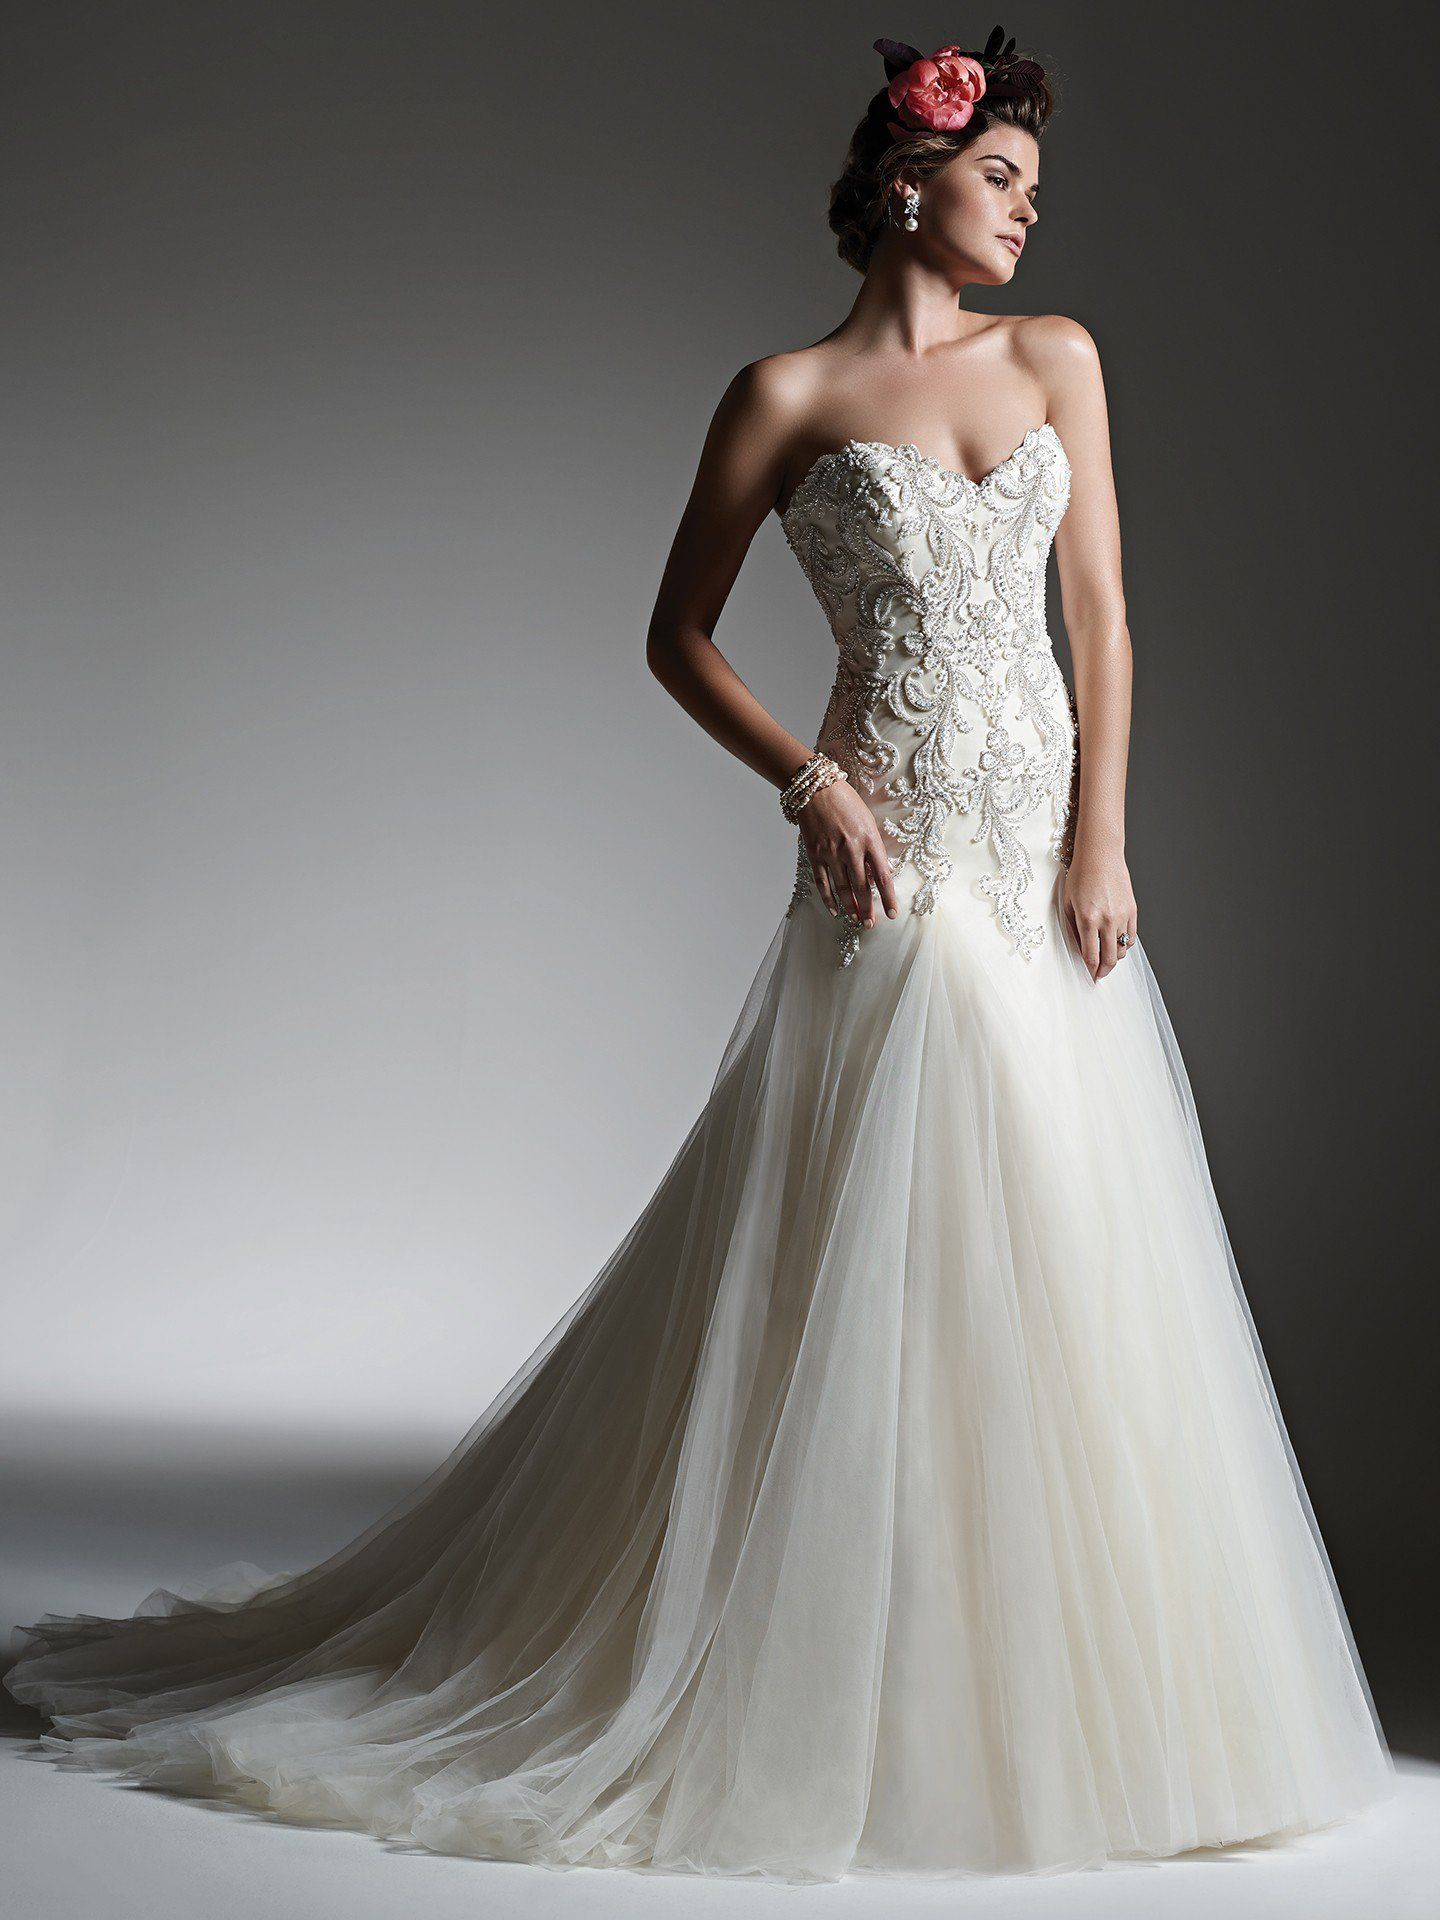 LIKE THE FLAIR CONNECTION  Sottero and Midgley - IDALIA, Delicate pearls, dazzling Swarovski crystals and shimmering beads adorn the bodice of this A-line wedding dress with a flowing tulle skirt. Finished with sweetheart neckline and pearl buttons over zipper closure and inner corset closure.